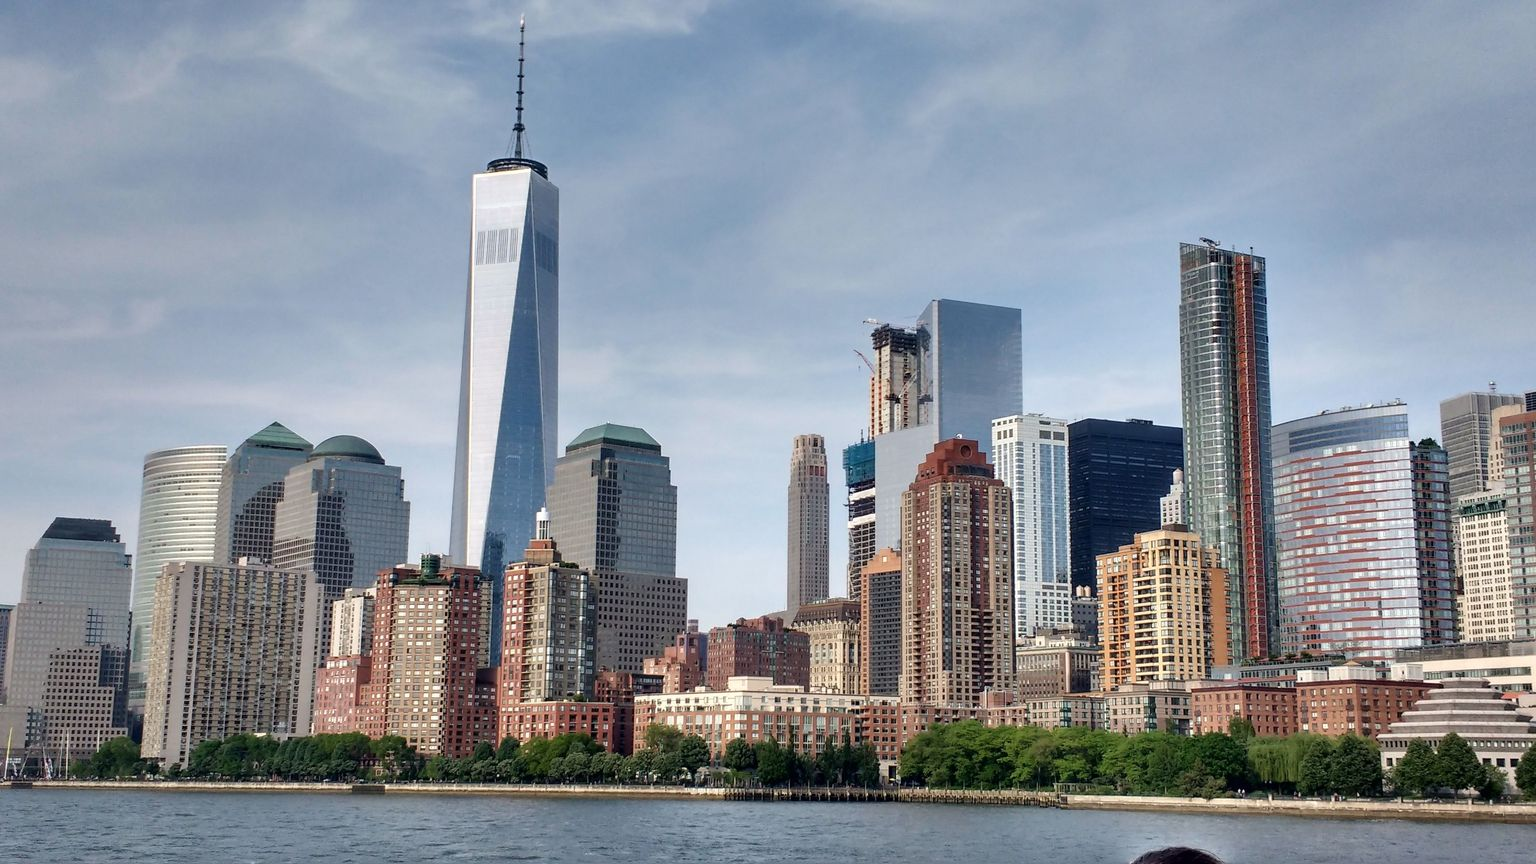 Lower Manhattan and the Freedom Tower